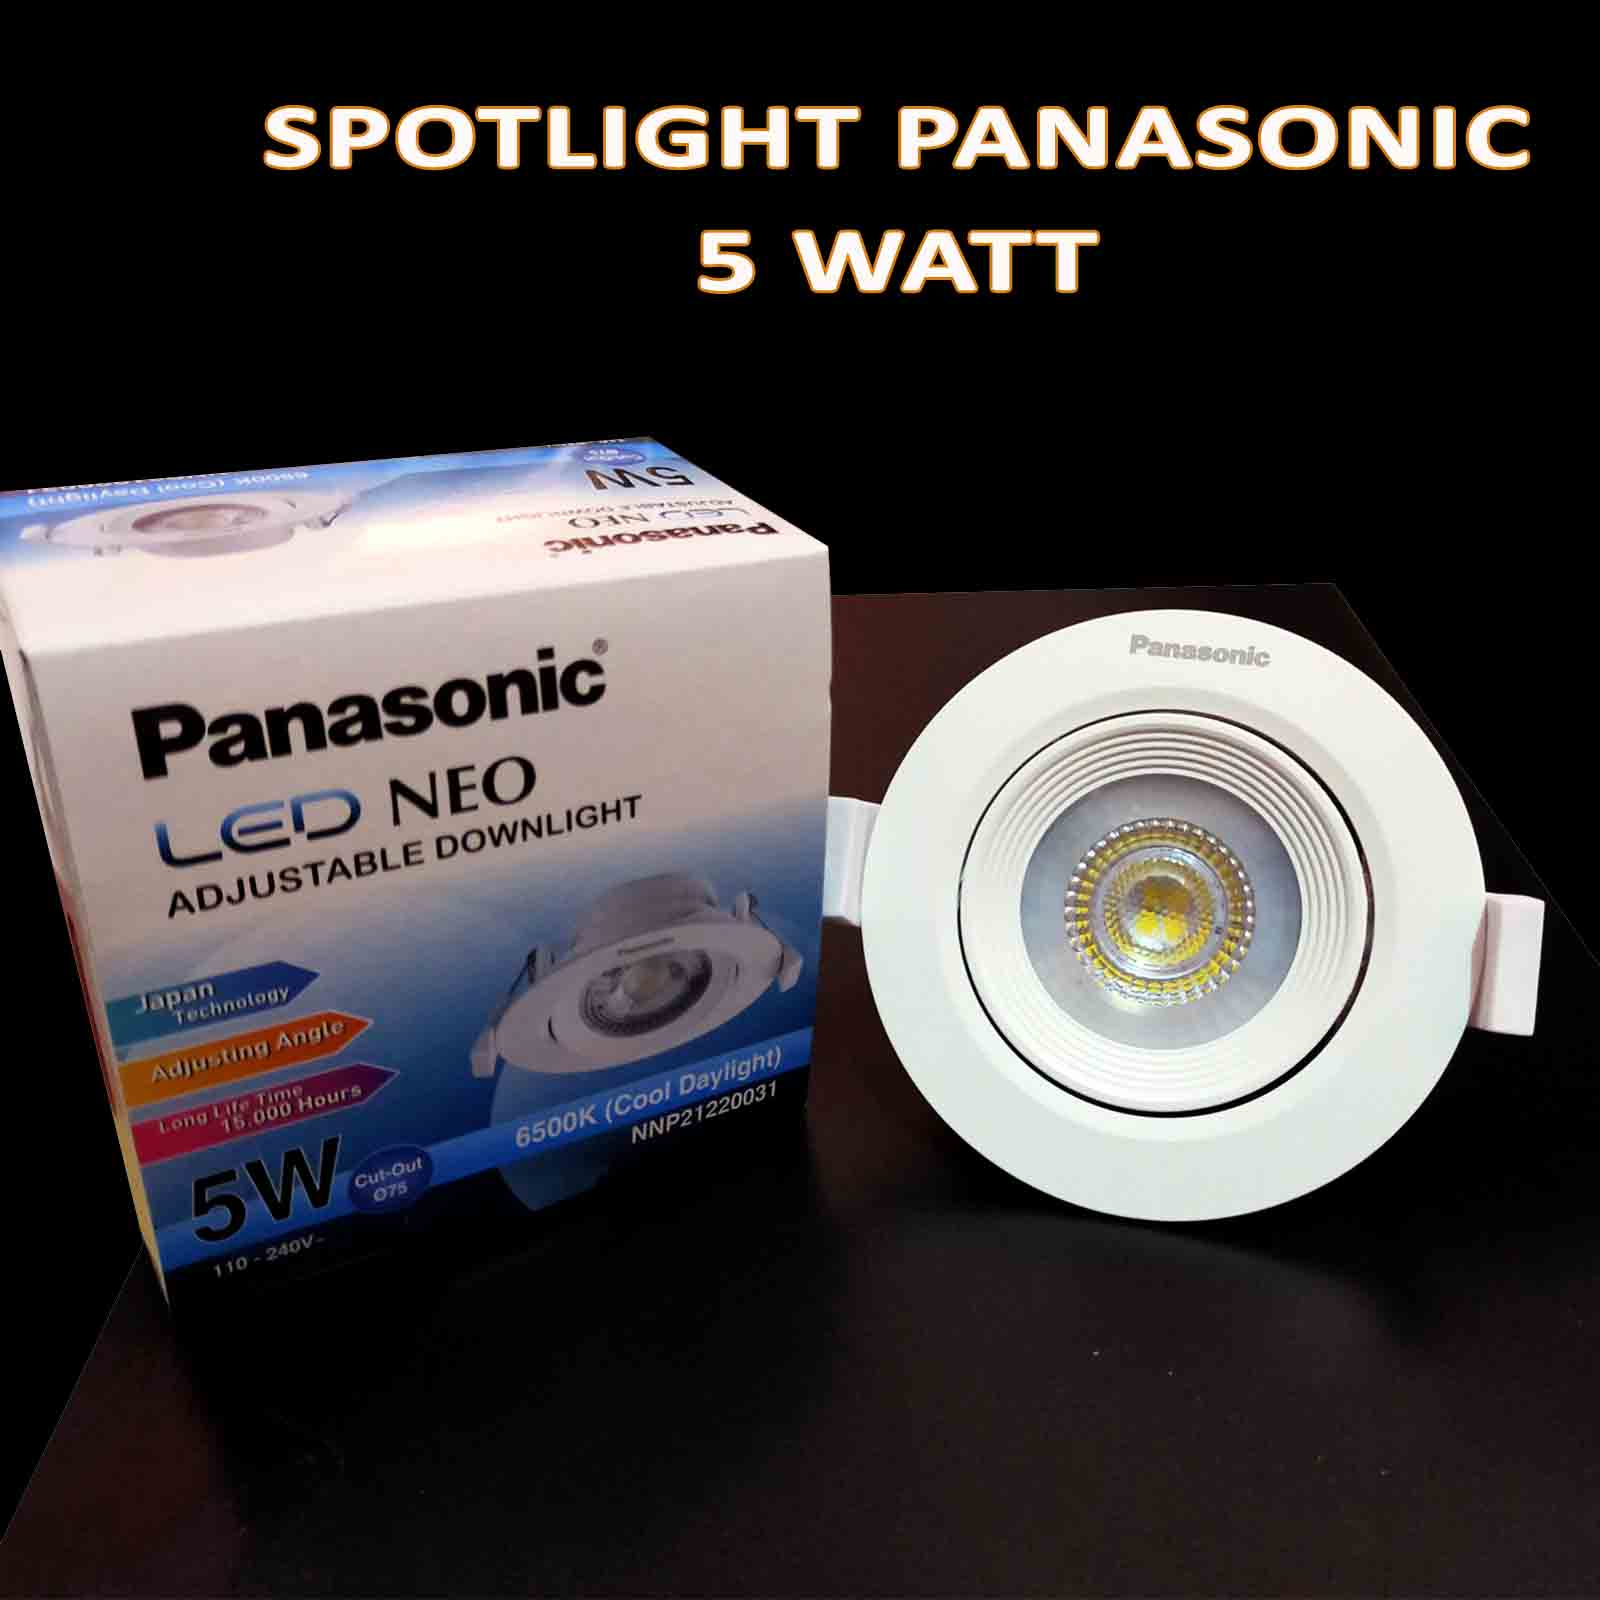 downlight spotlight led/cob 3 watt panasonic neo garansi